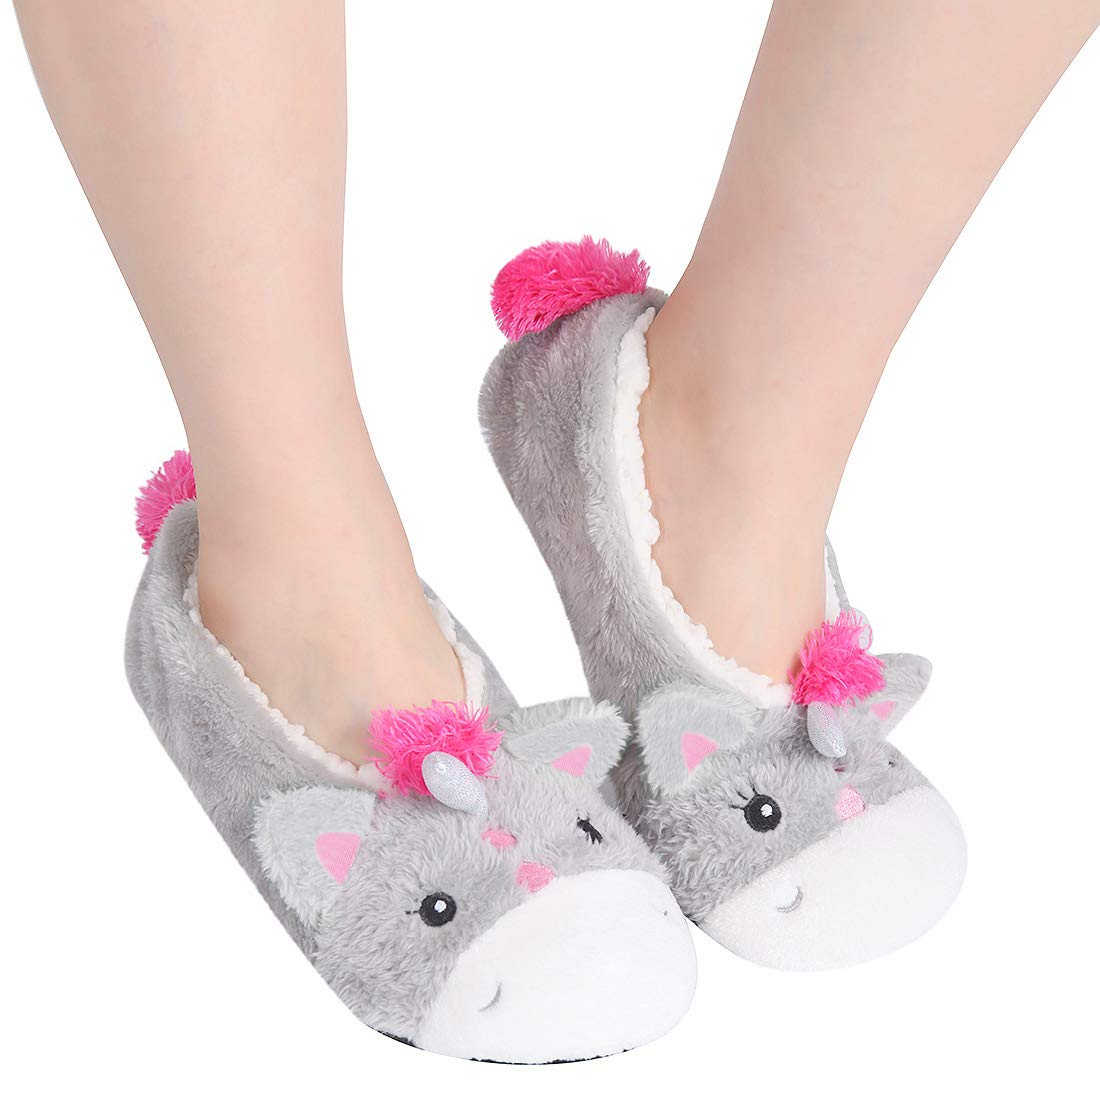 ChicNChic Ladies Christmas Gift Cartoon Warm Low Cut Fleece Lined Socks Non-Slip Unicorn Sheep Ankle Slipper Socks Unicorn)